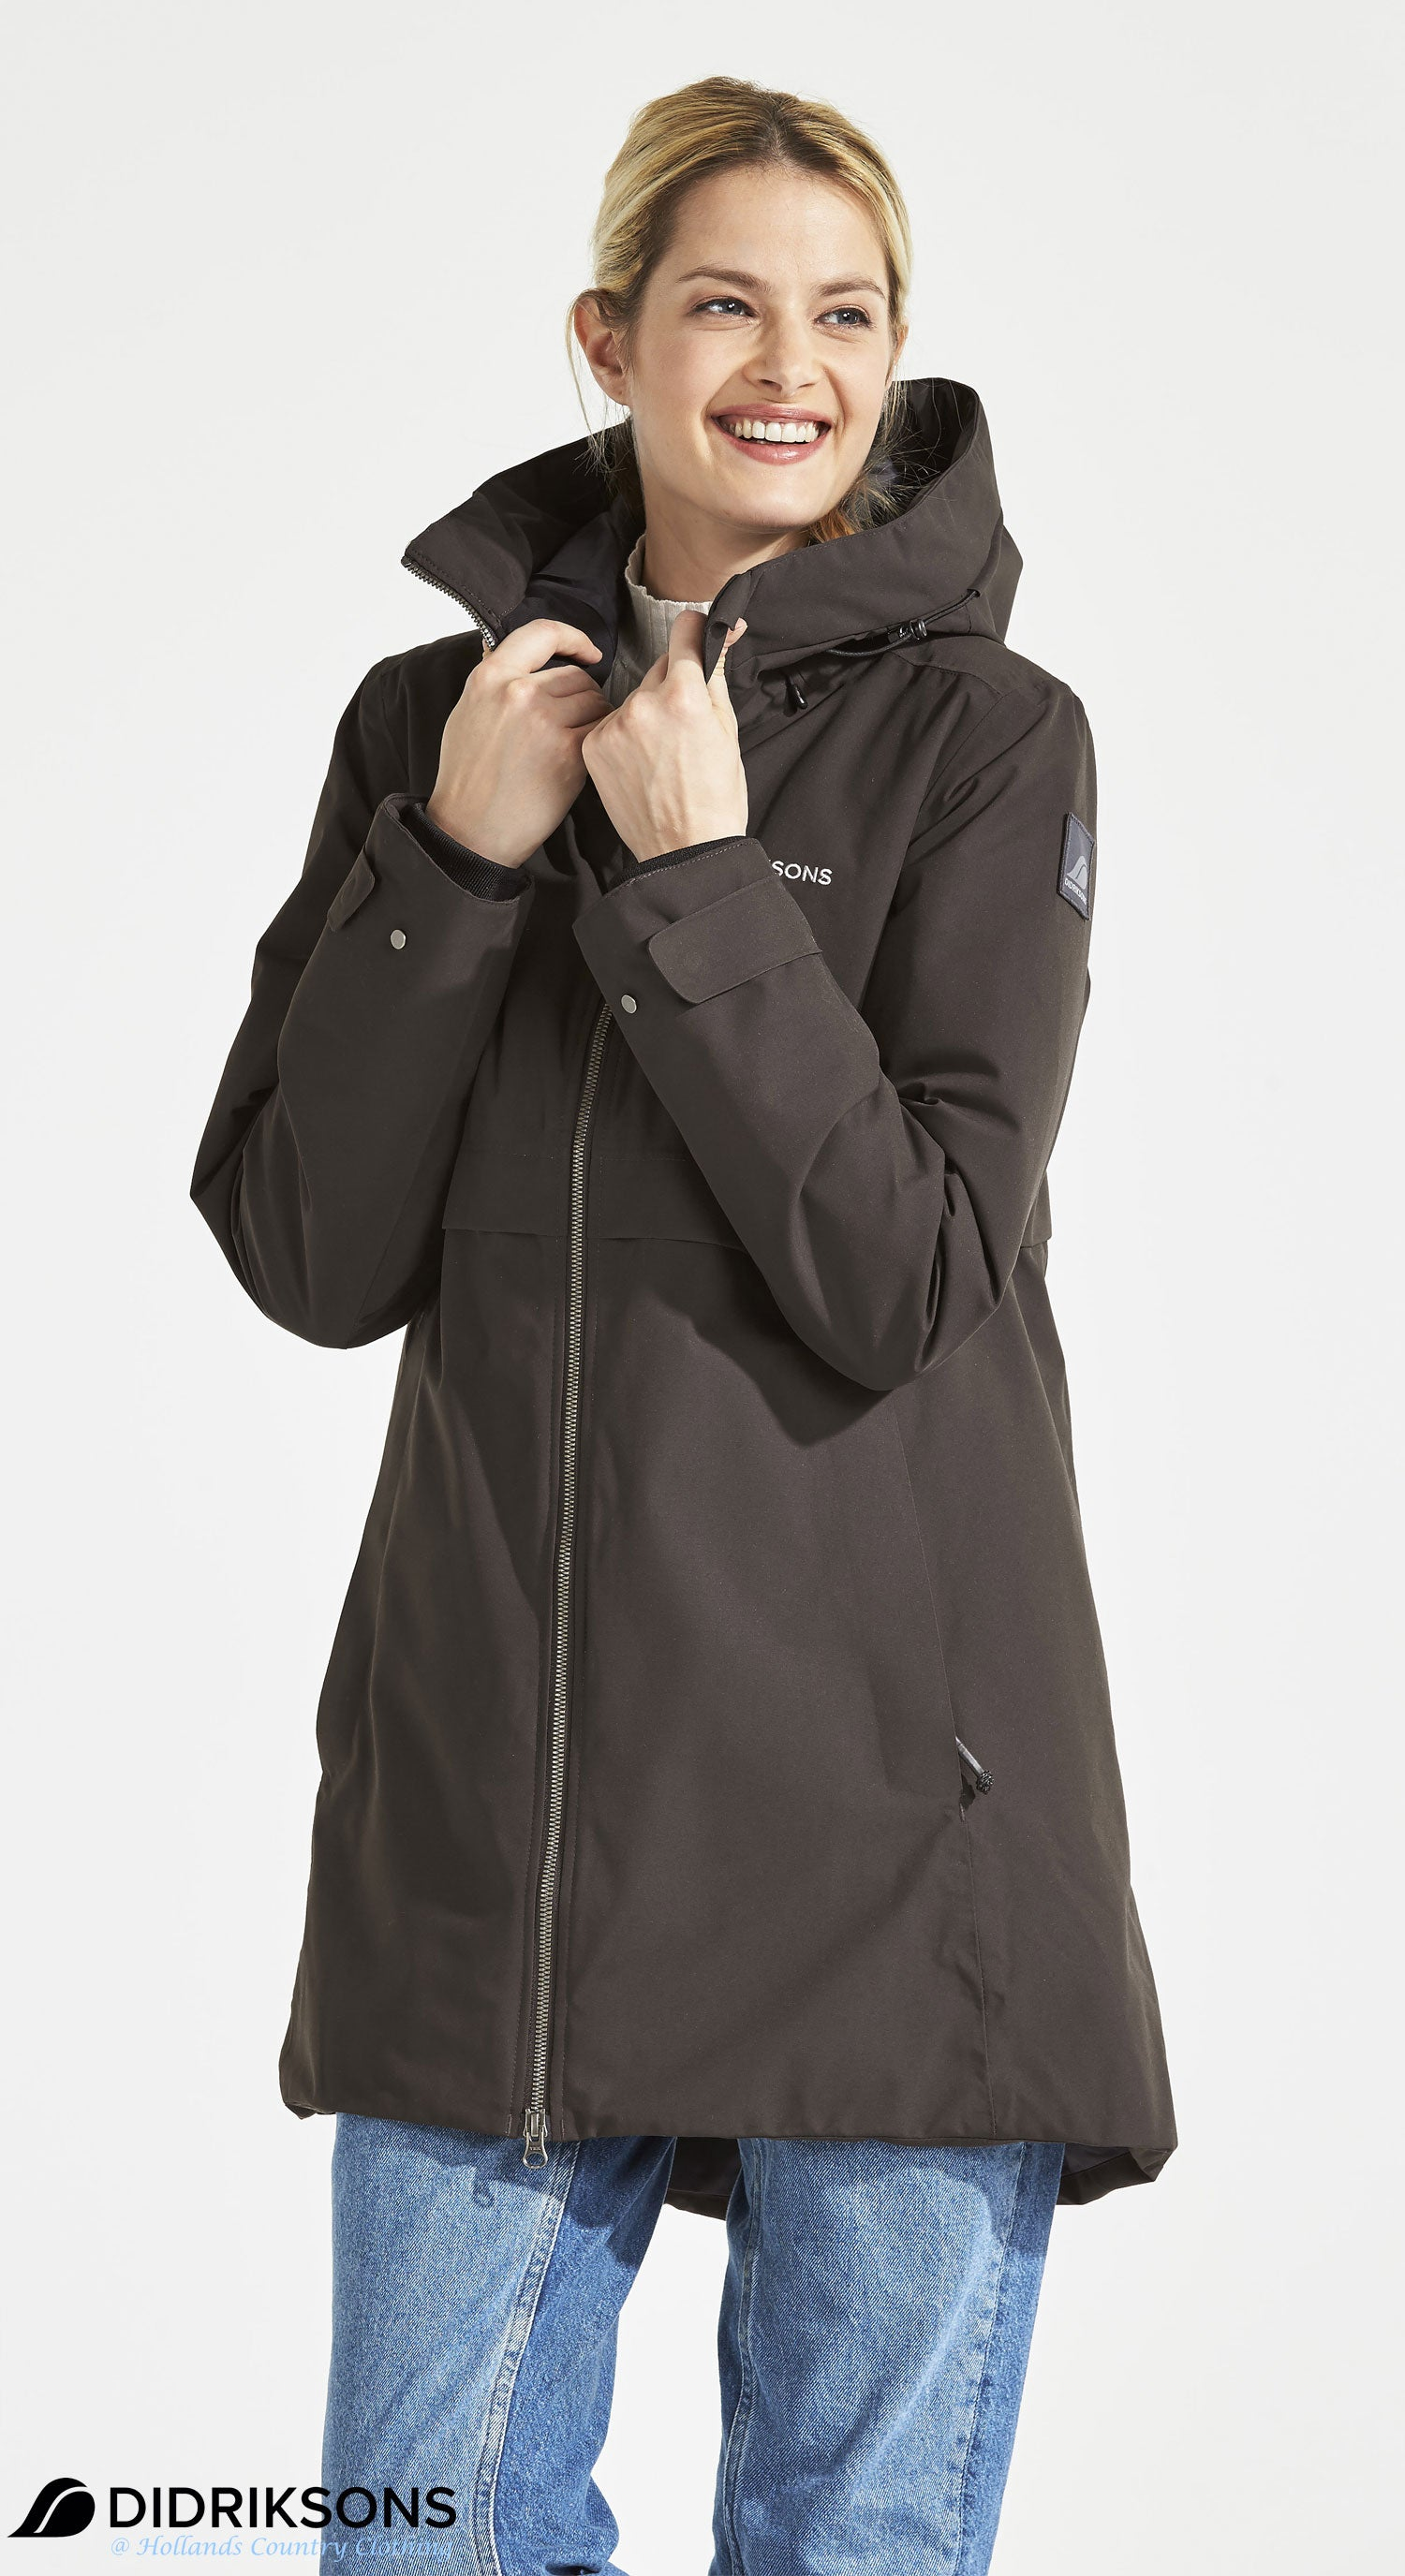 227cc8c52 Didriksons Helle Waterproof Parka – Hollands Country Clothing